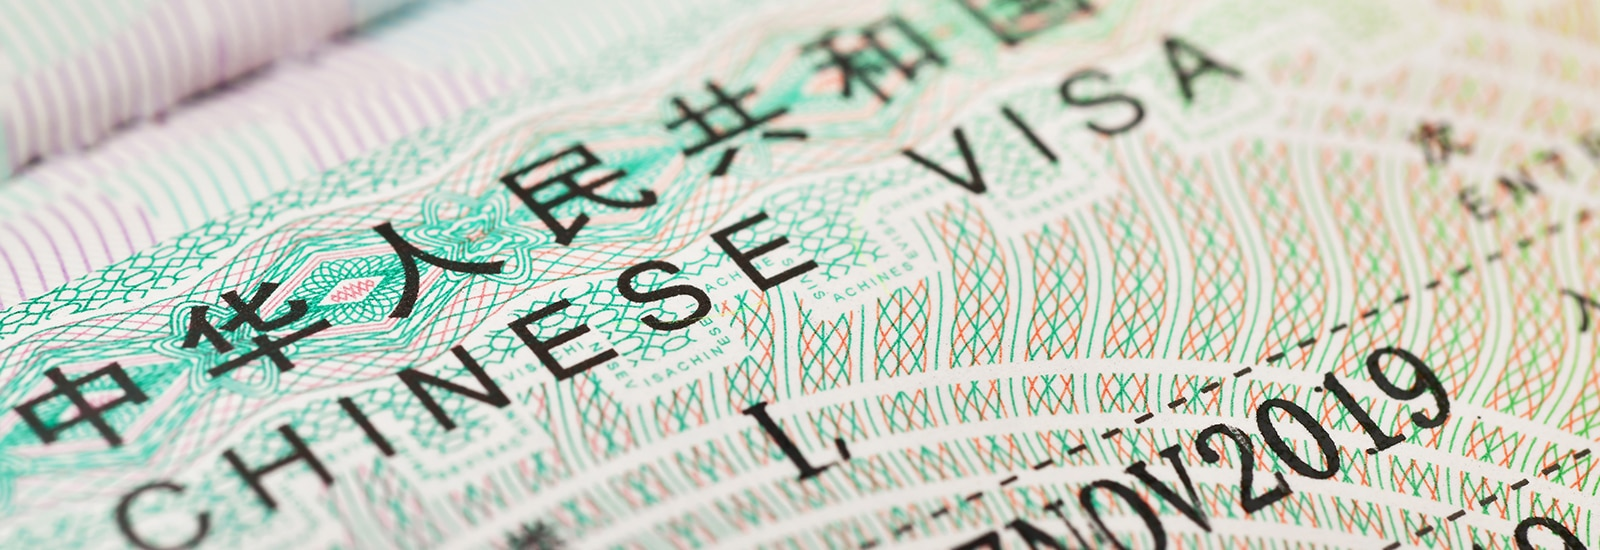 Entrepreneurs and businesspeople need frequent travel without border limits